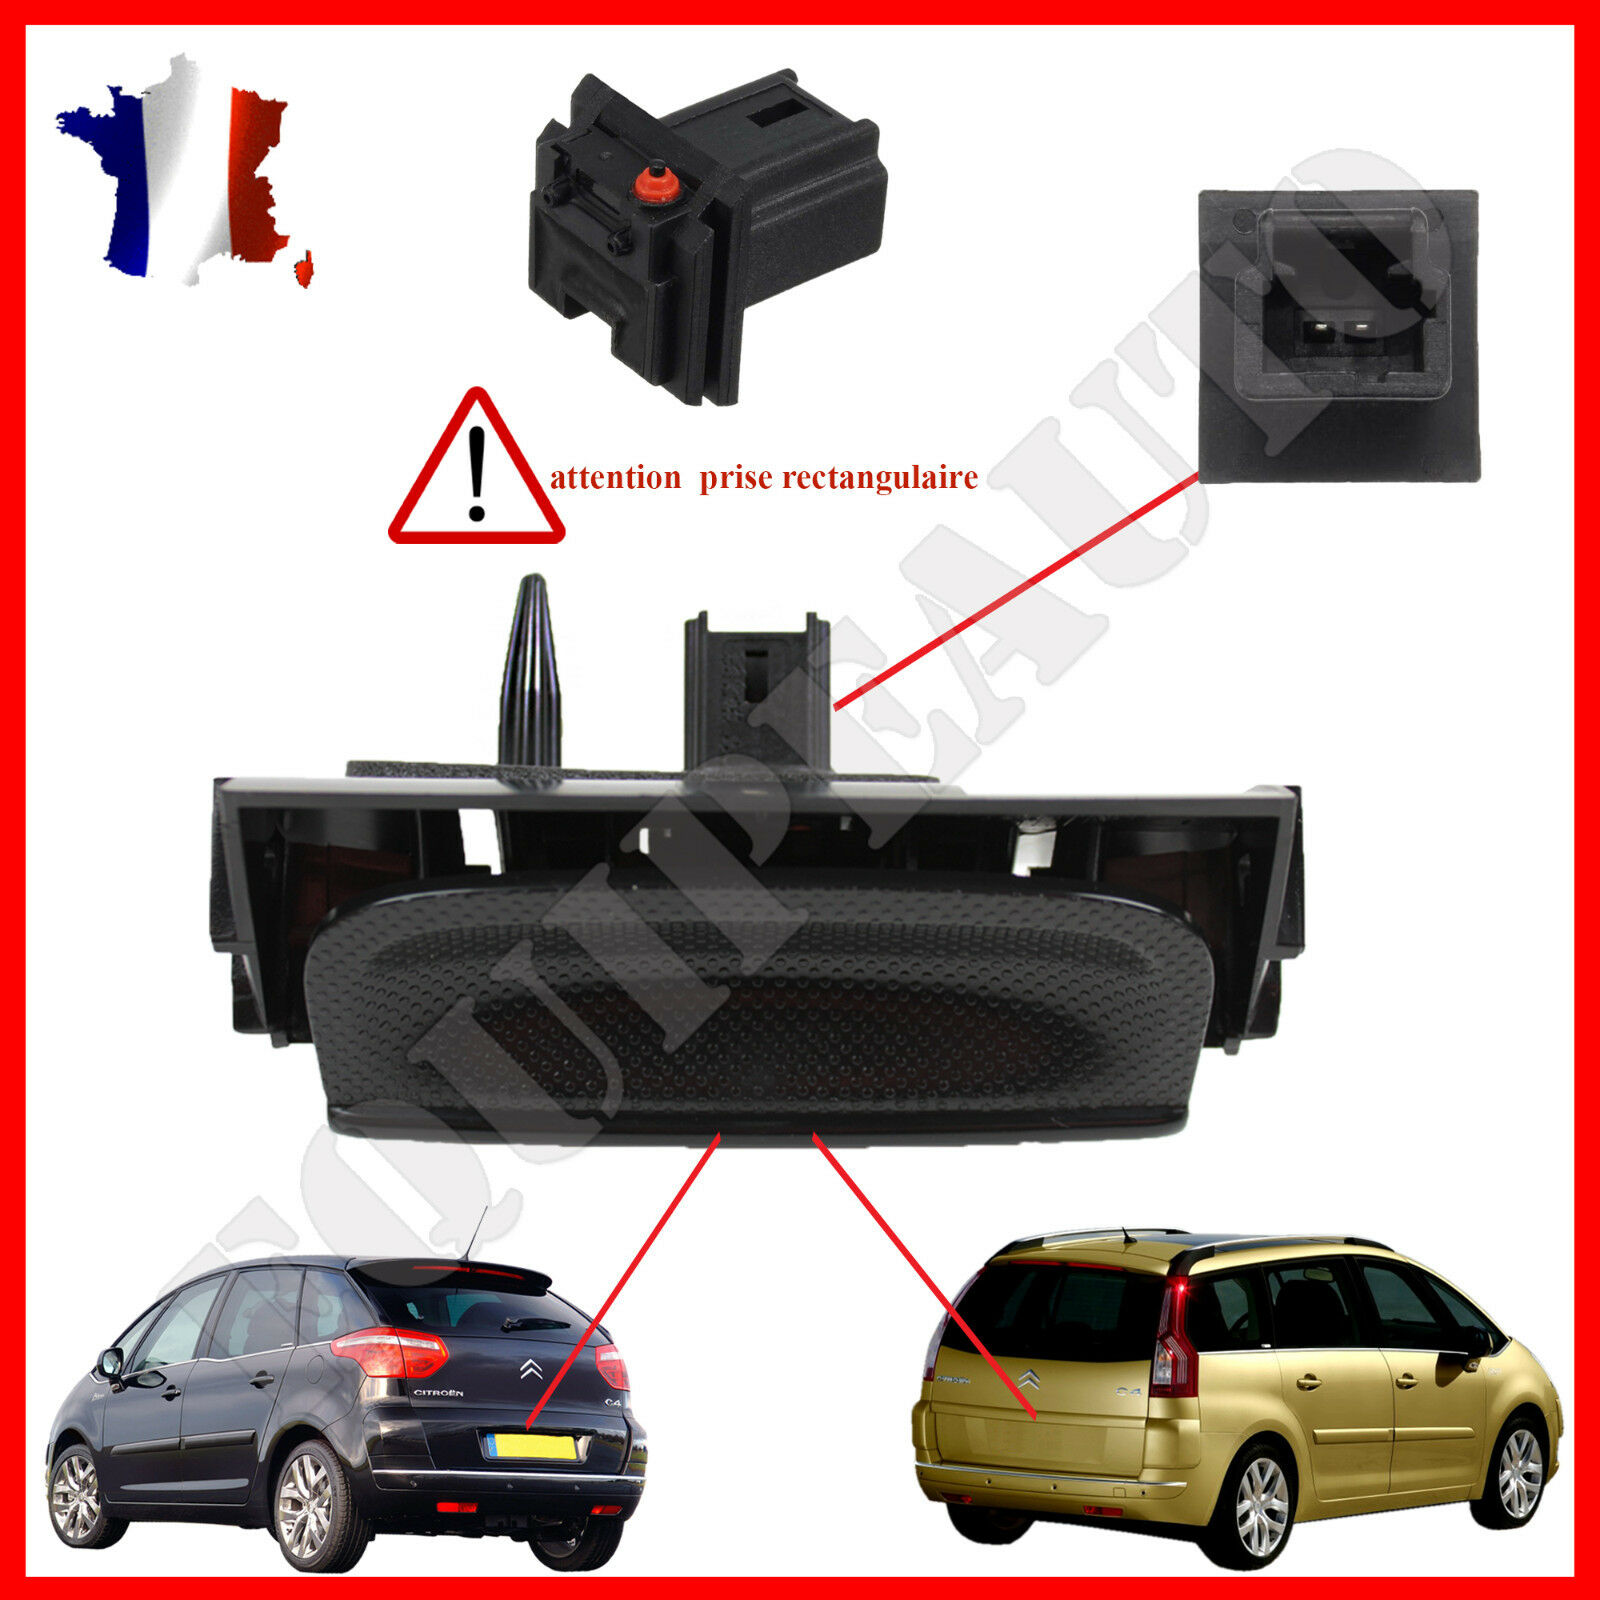 poignee exterieure de coffre citroen c4 grand picasso 8726v7 eur 39 90. Black Bedroom Furniture Sets. Home Design Ideas